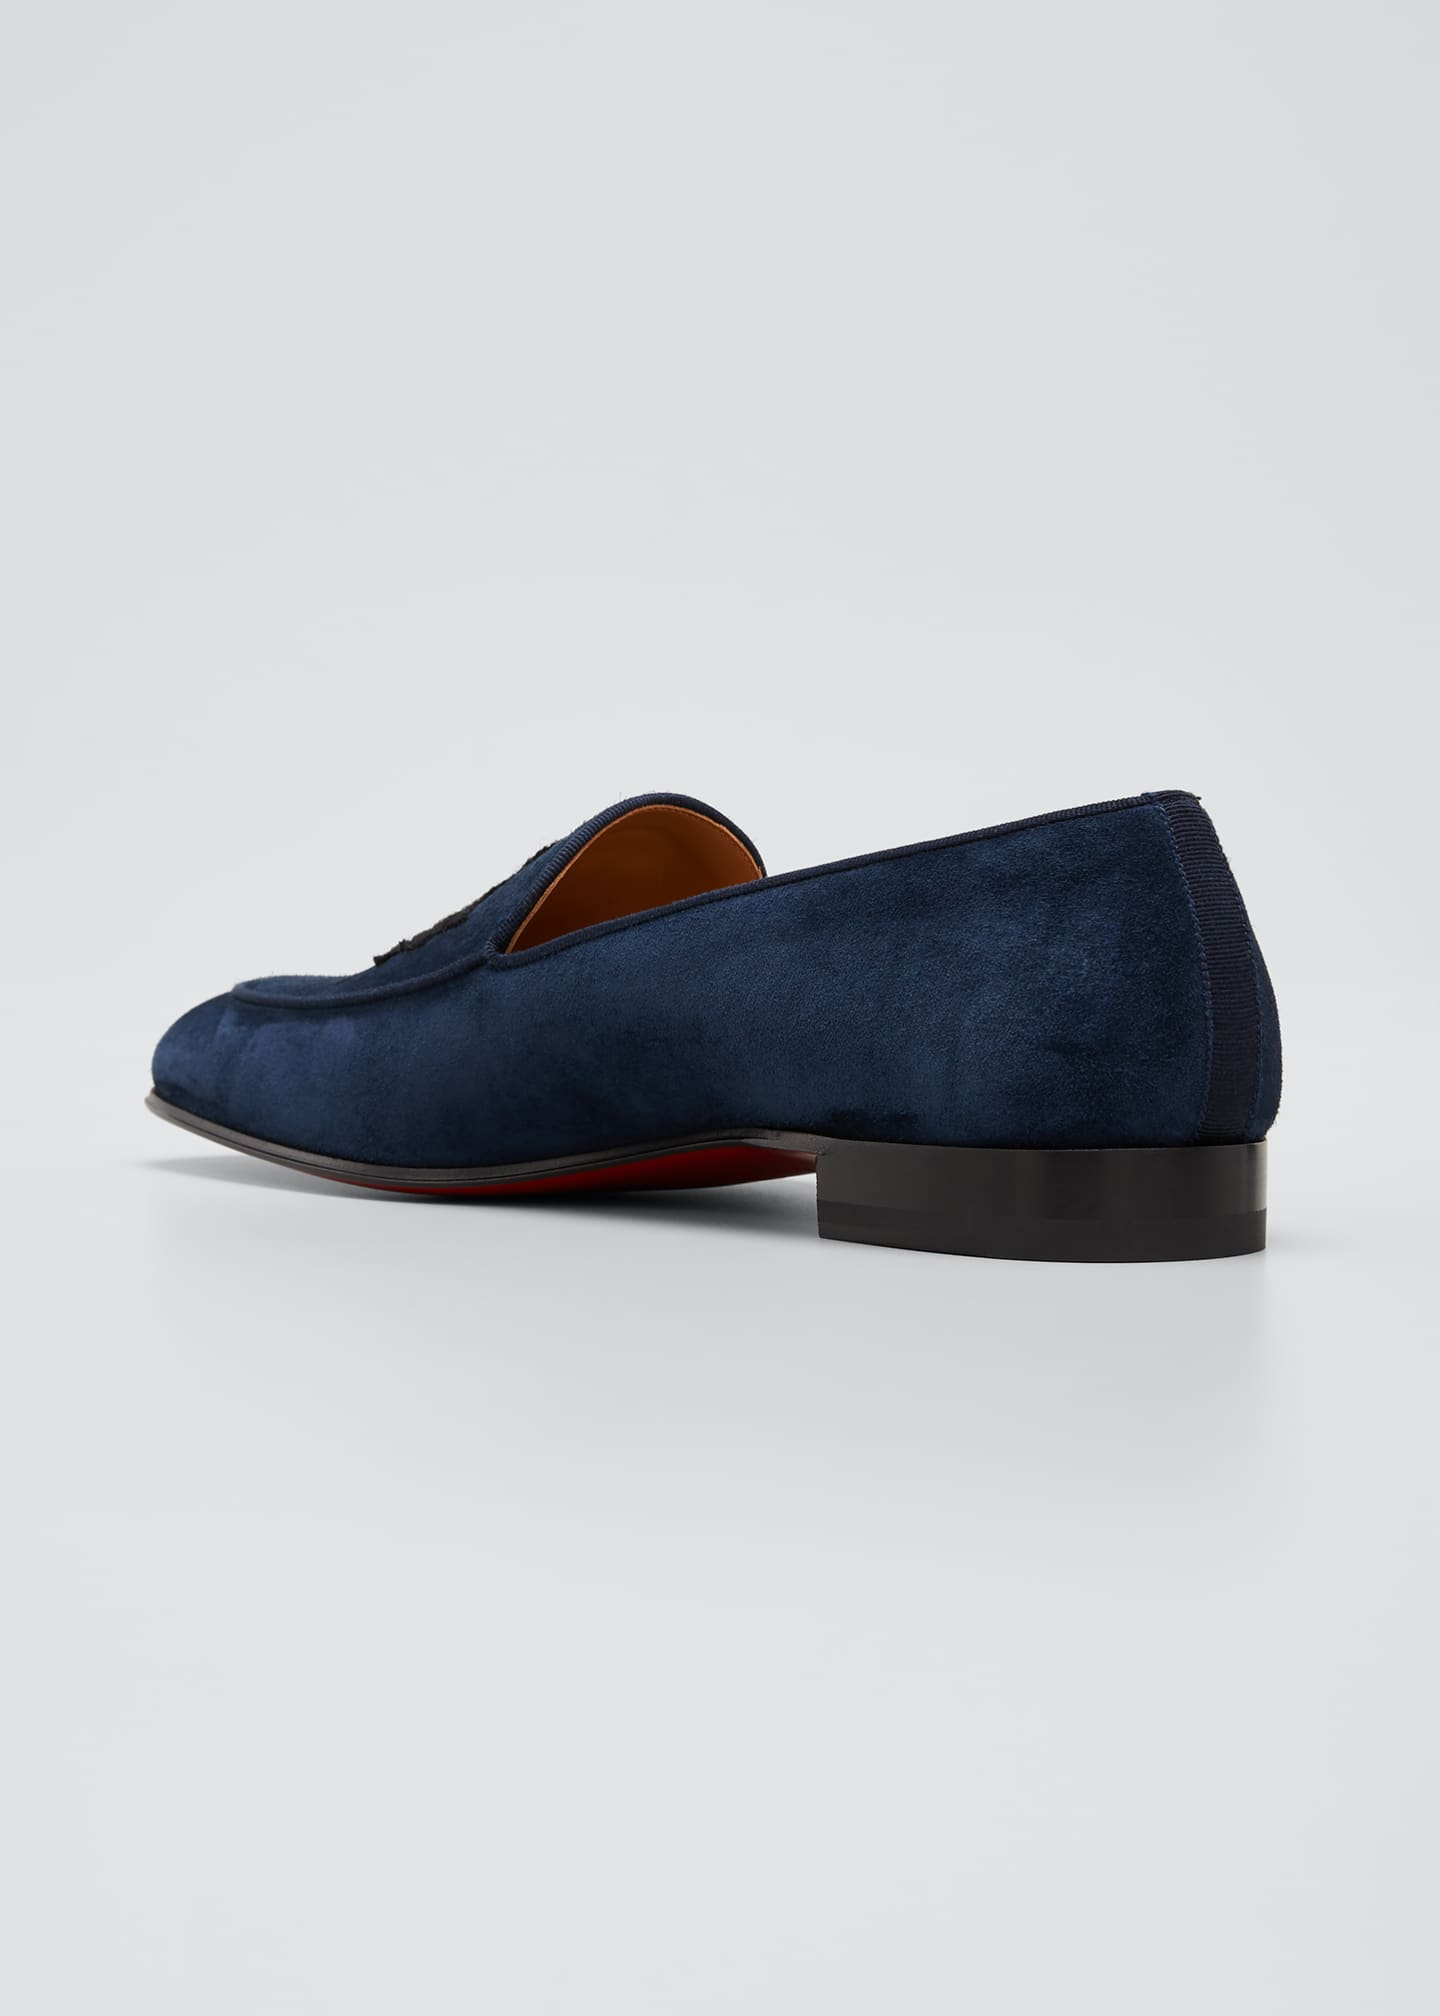 Image 2 of 4: Men's Crest on the Nile Suede Red Sole Loafers